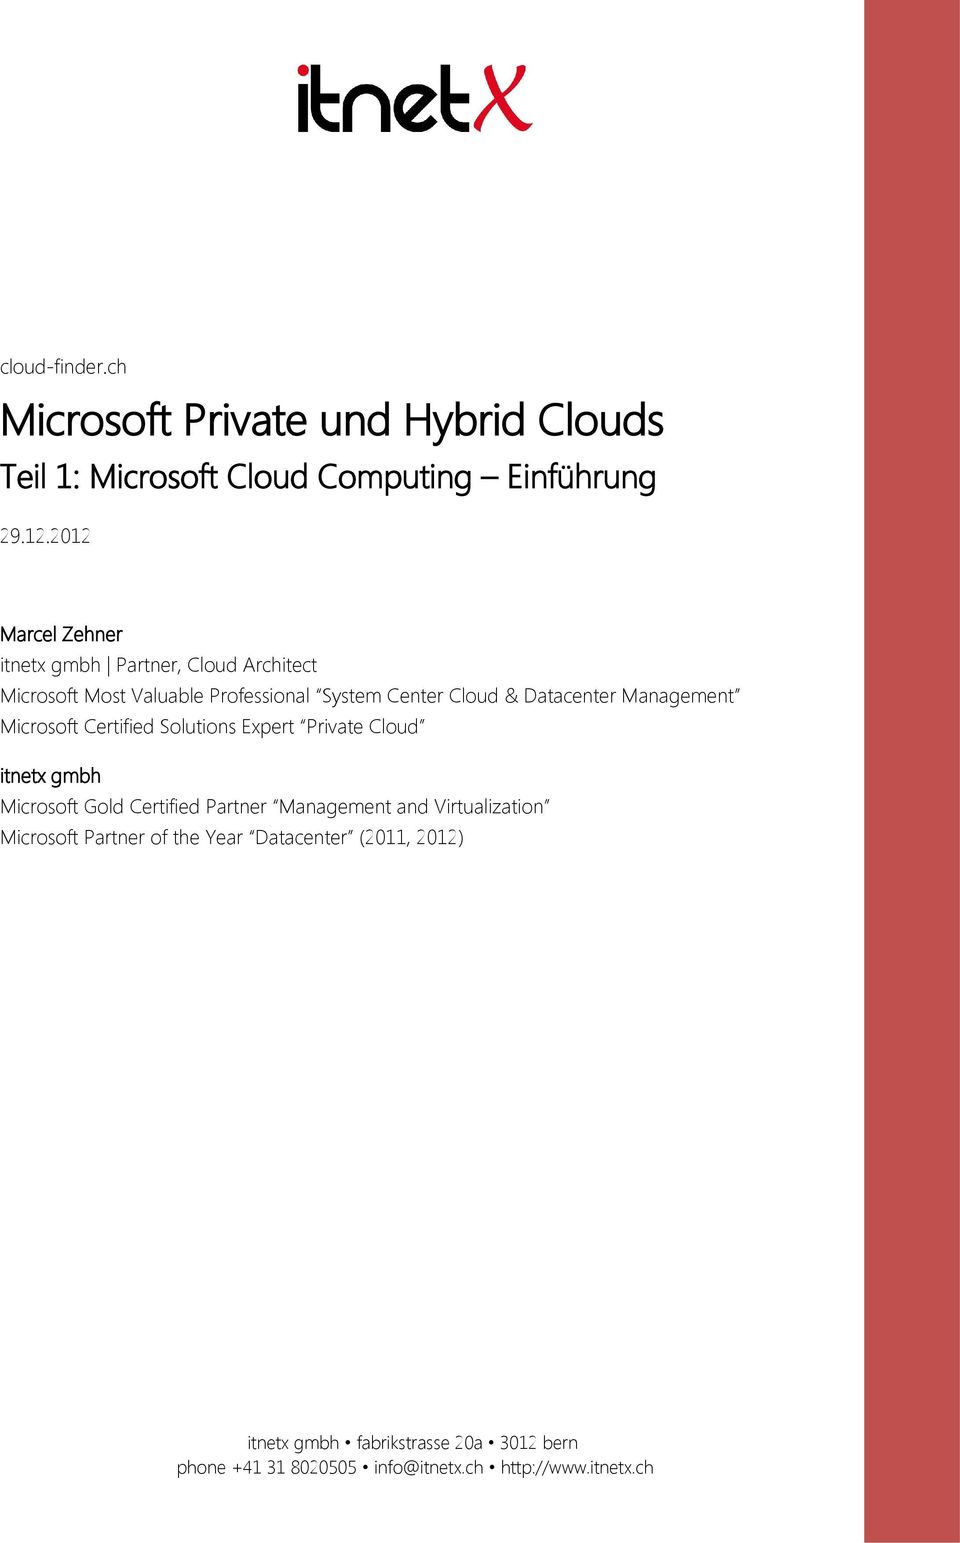 Center Cloud & Datacenter Management Microsoft Certified Solutions Expert Private Cloud itnetx gmbh